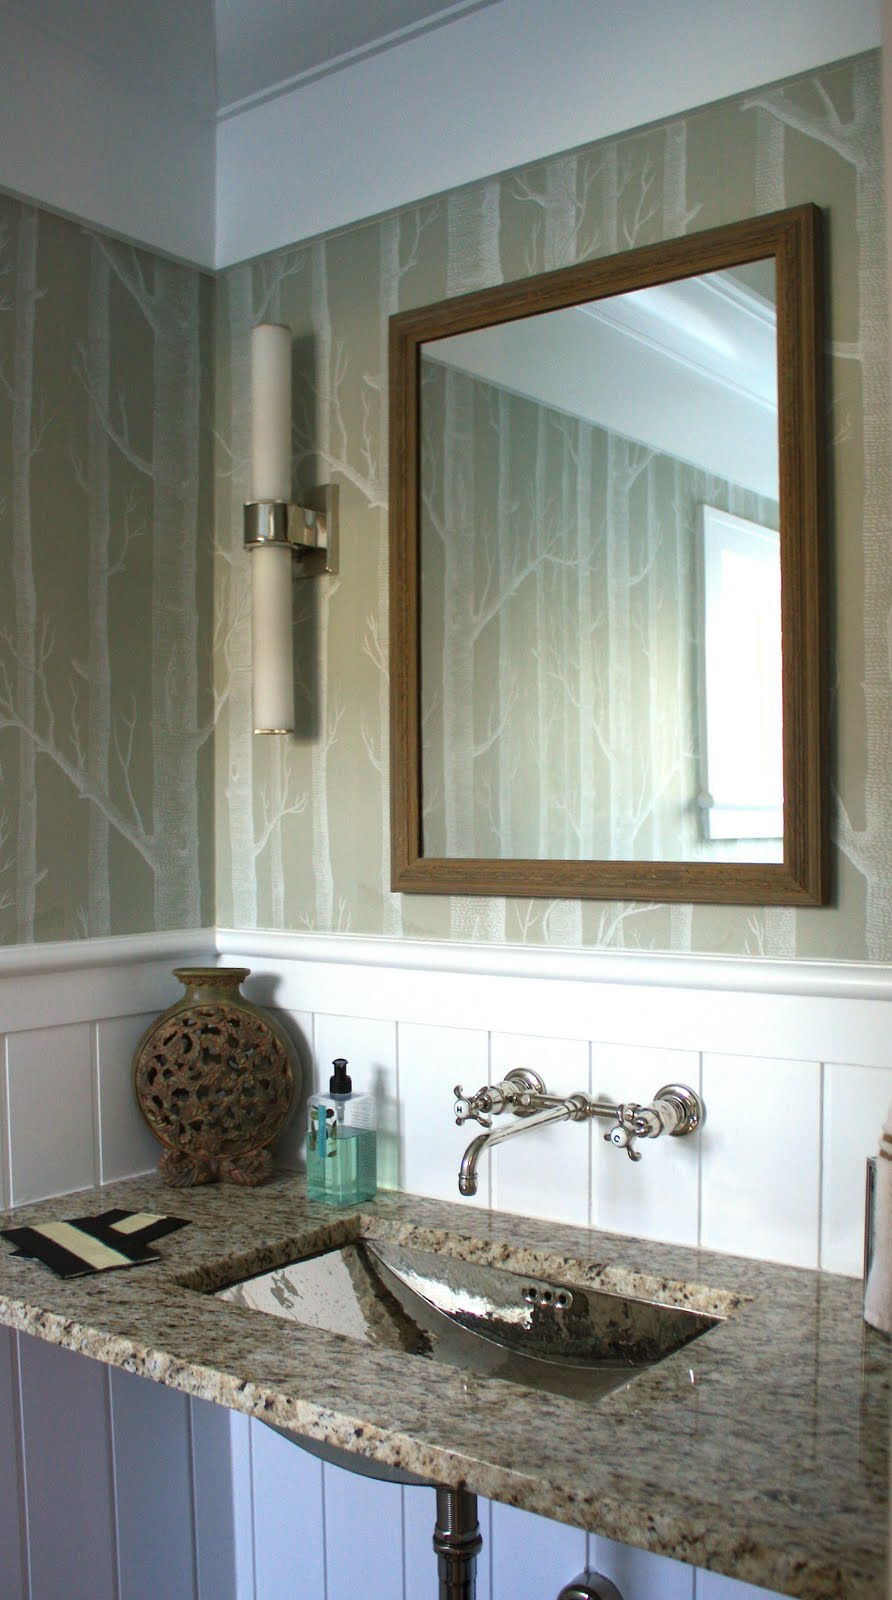 New Small Bathroom Ideas Photo Gallery 2012 Screen Media